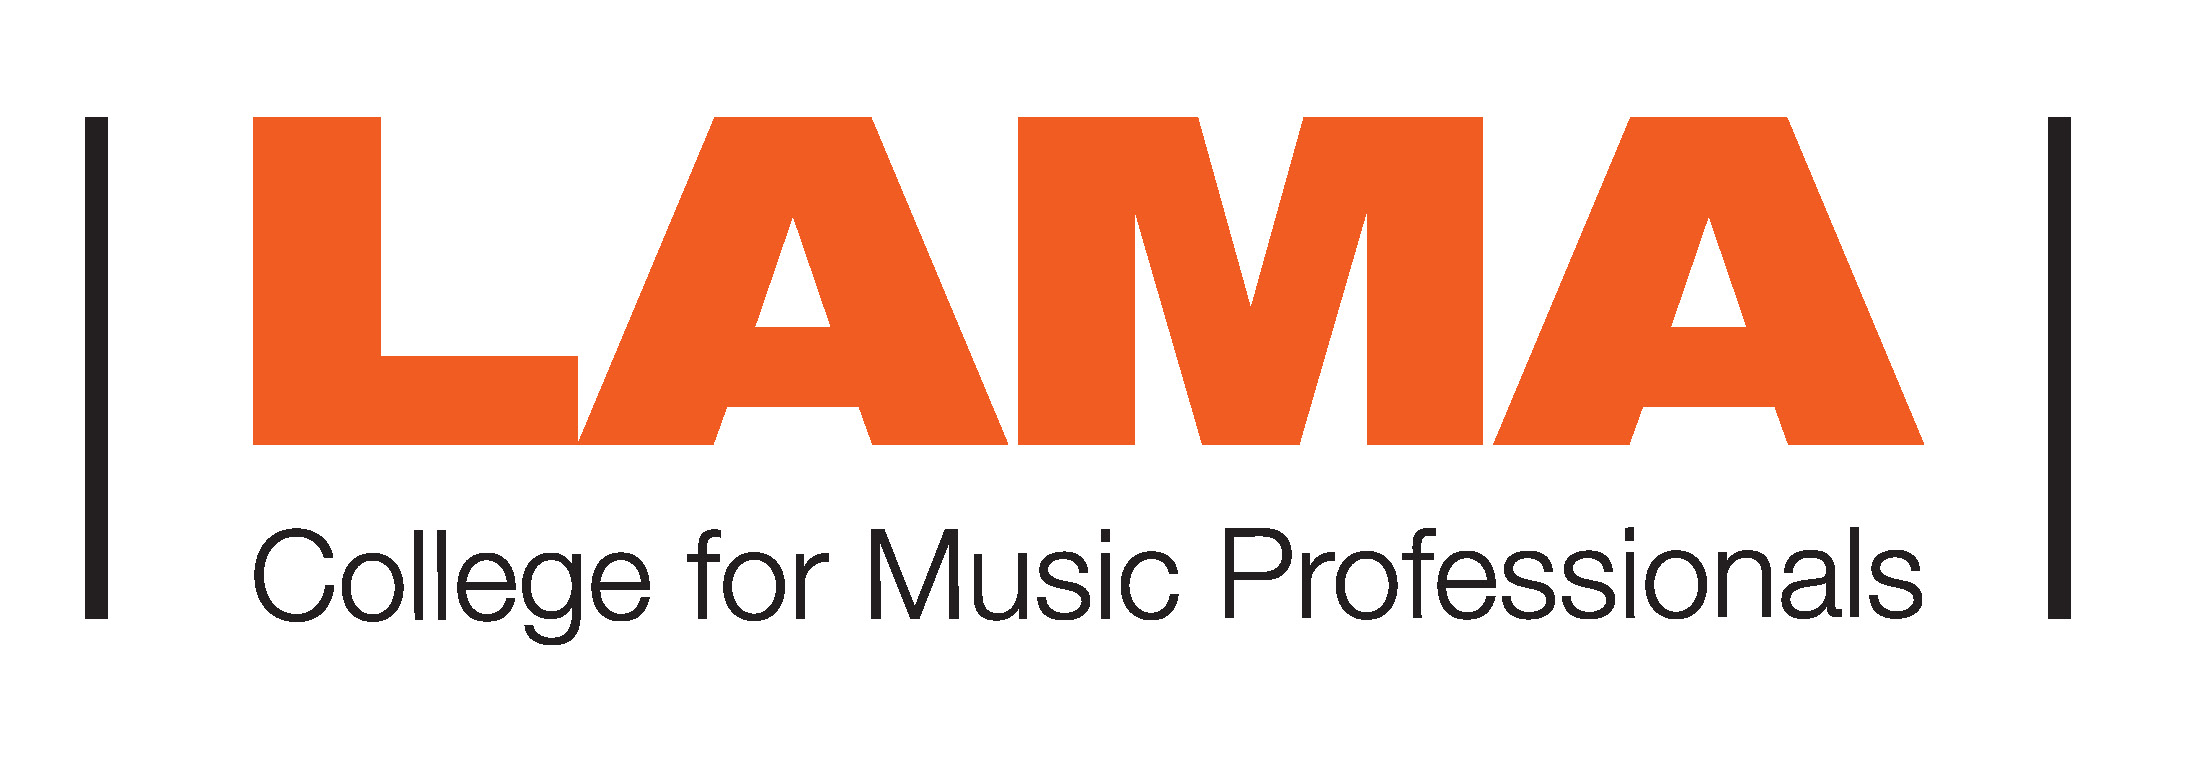 LAMA College for Music Professionals